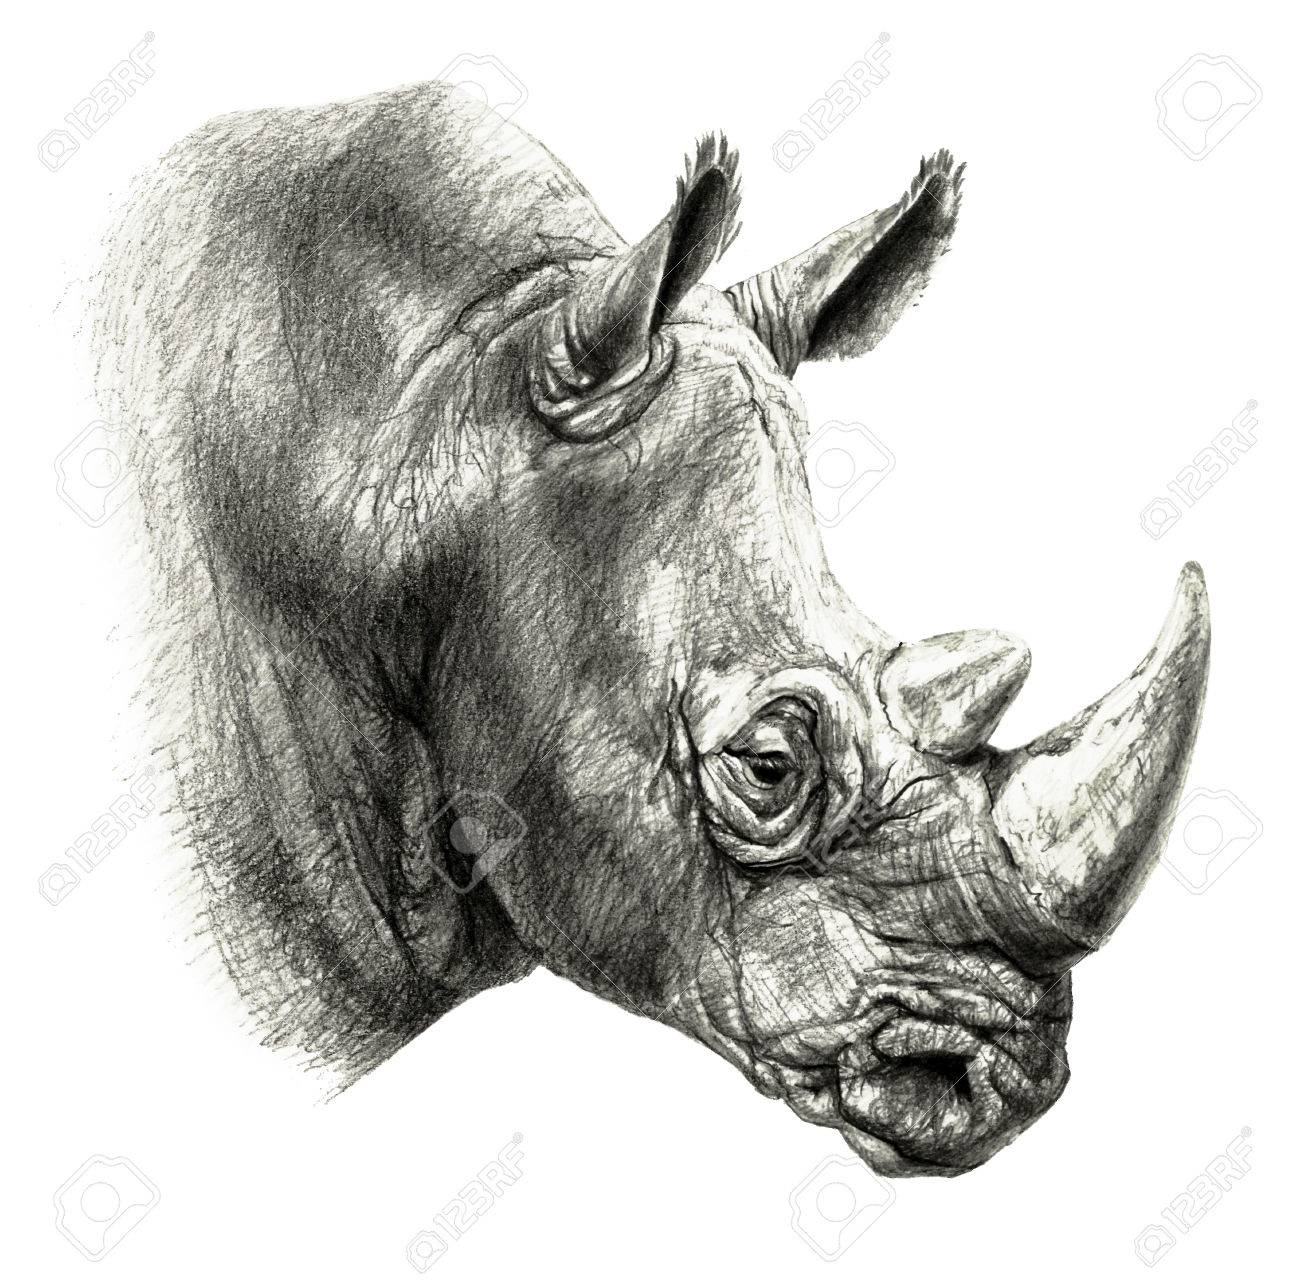 Pencil drawing rhinos head in profile isolated on white background stock photo 75014611